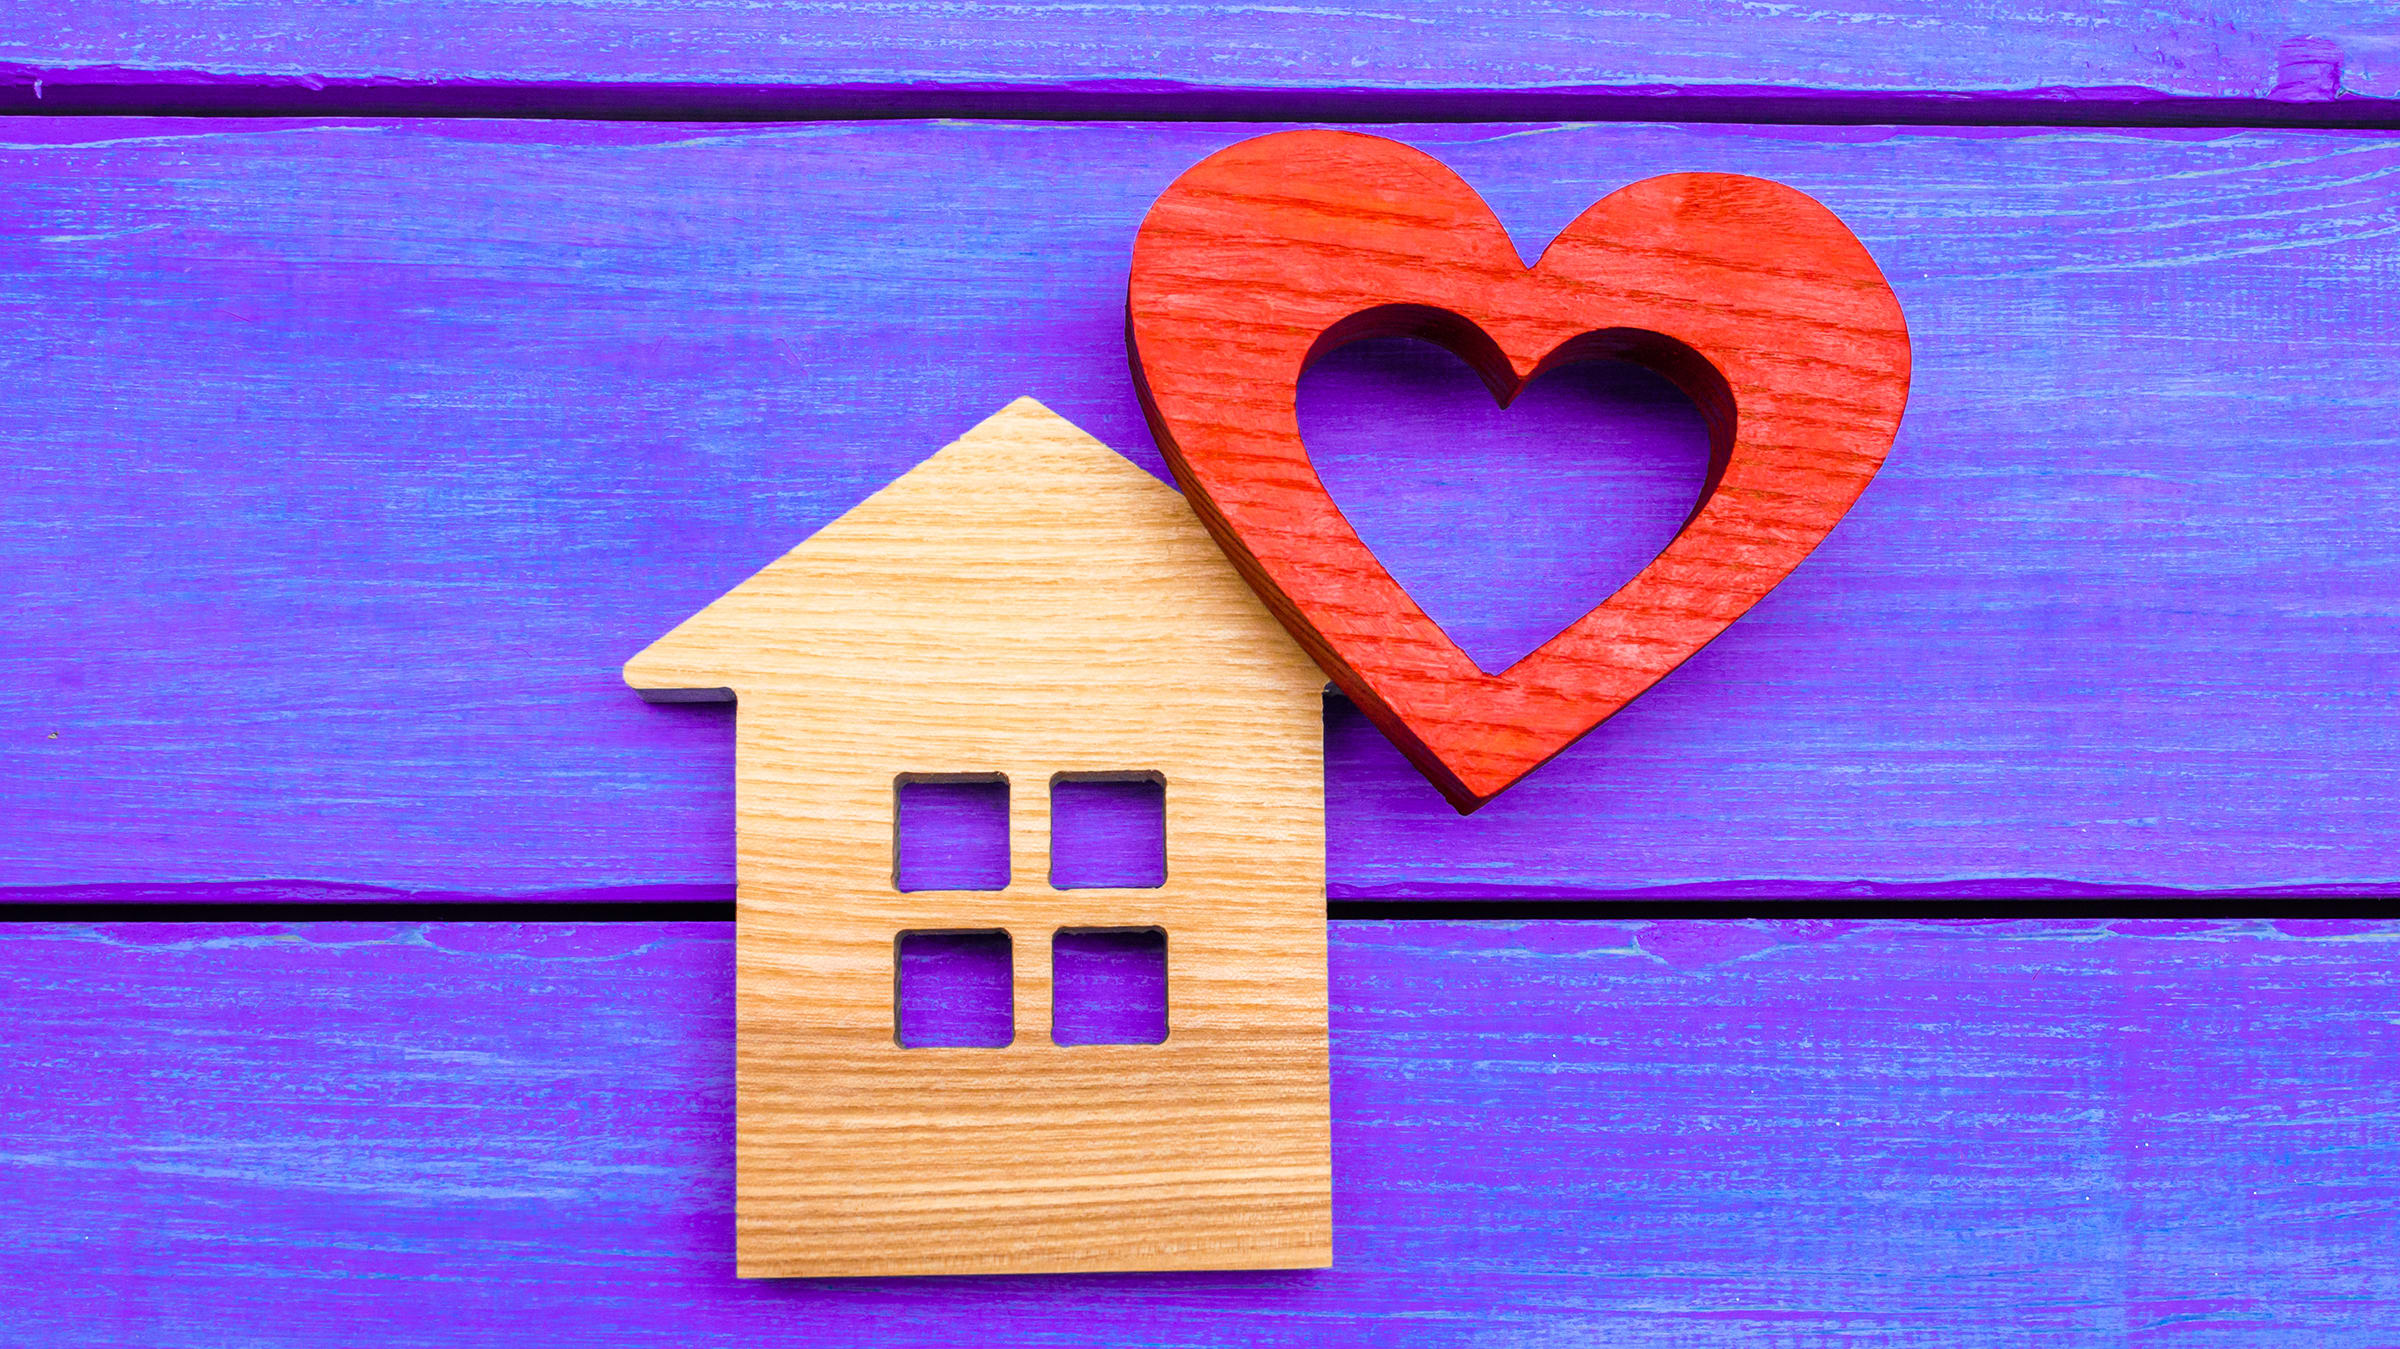 Wooden home cut-out with cut-out wooden heart, symbolizing Yale's home-based care programs